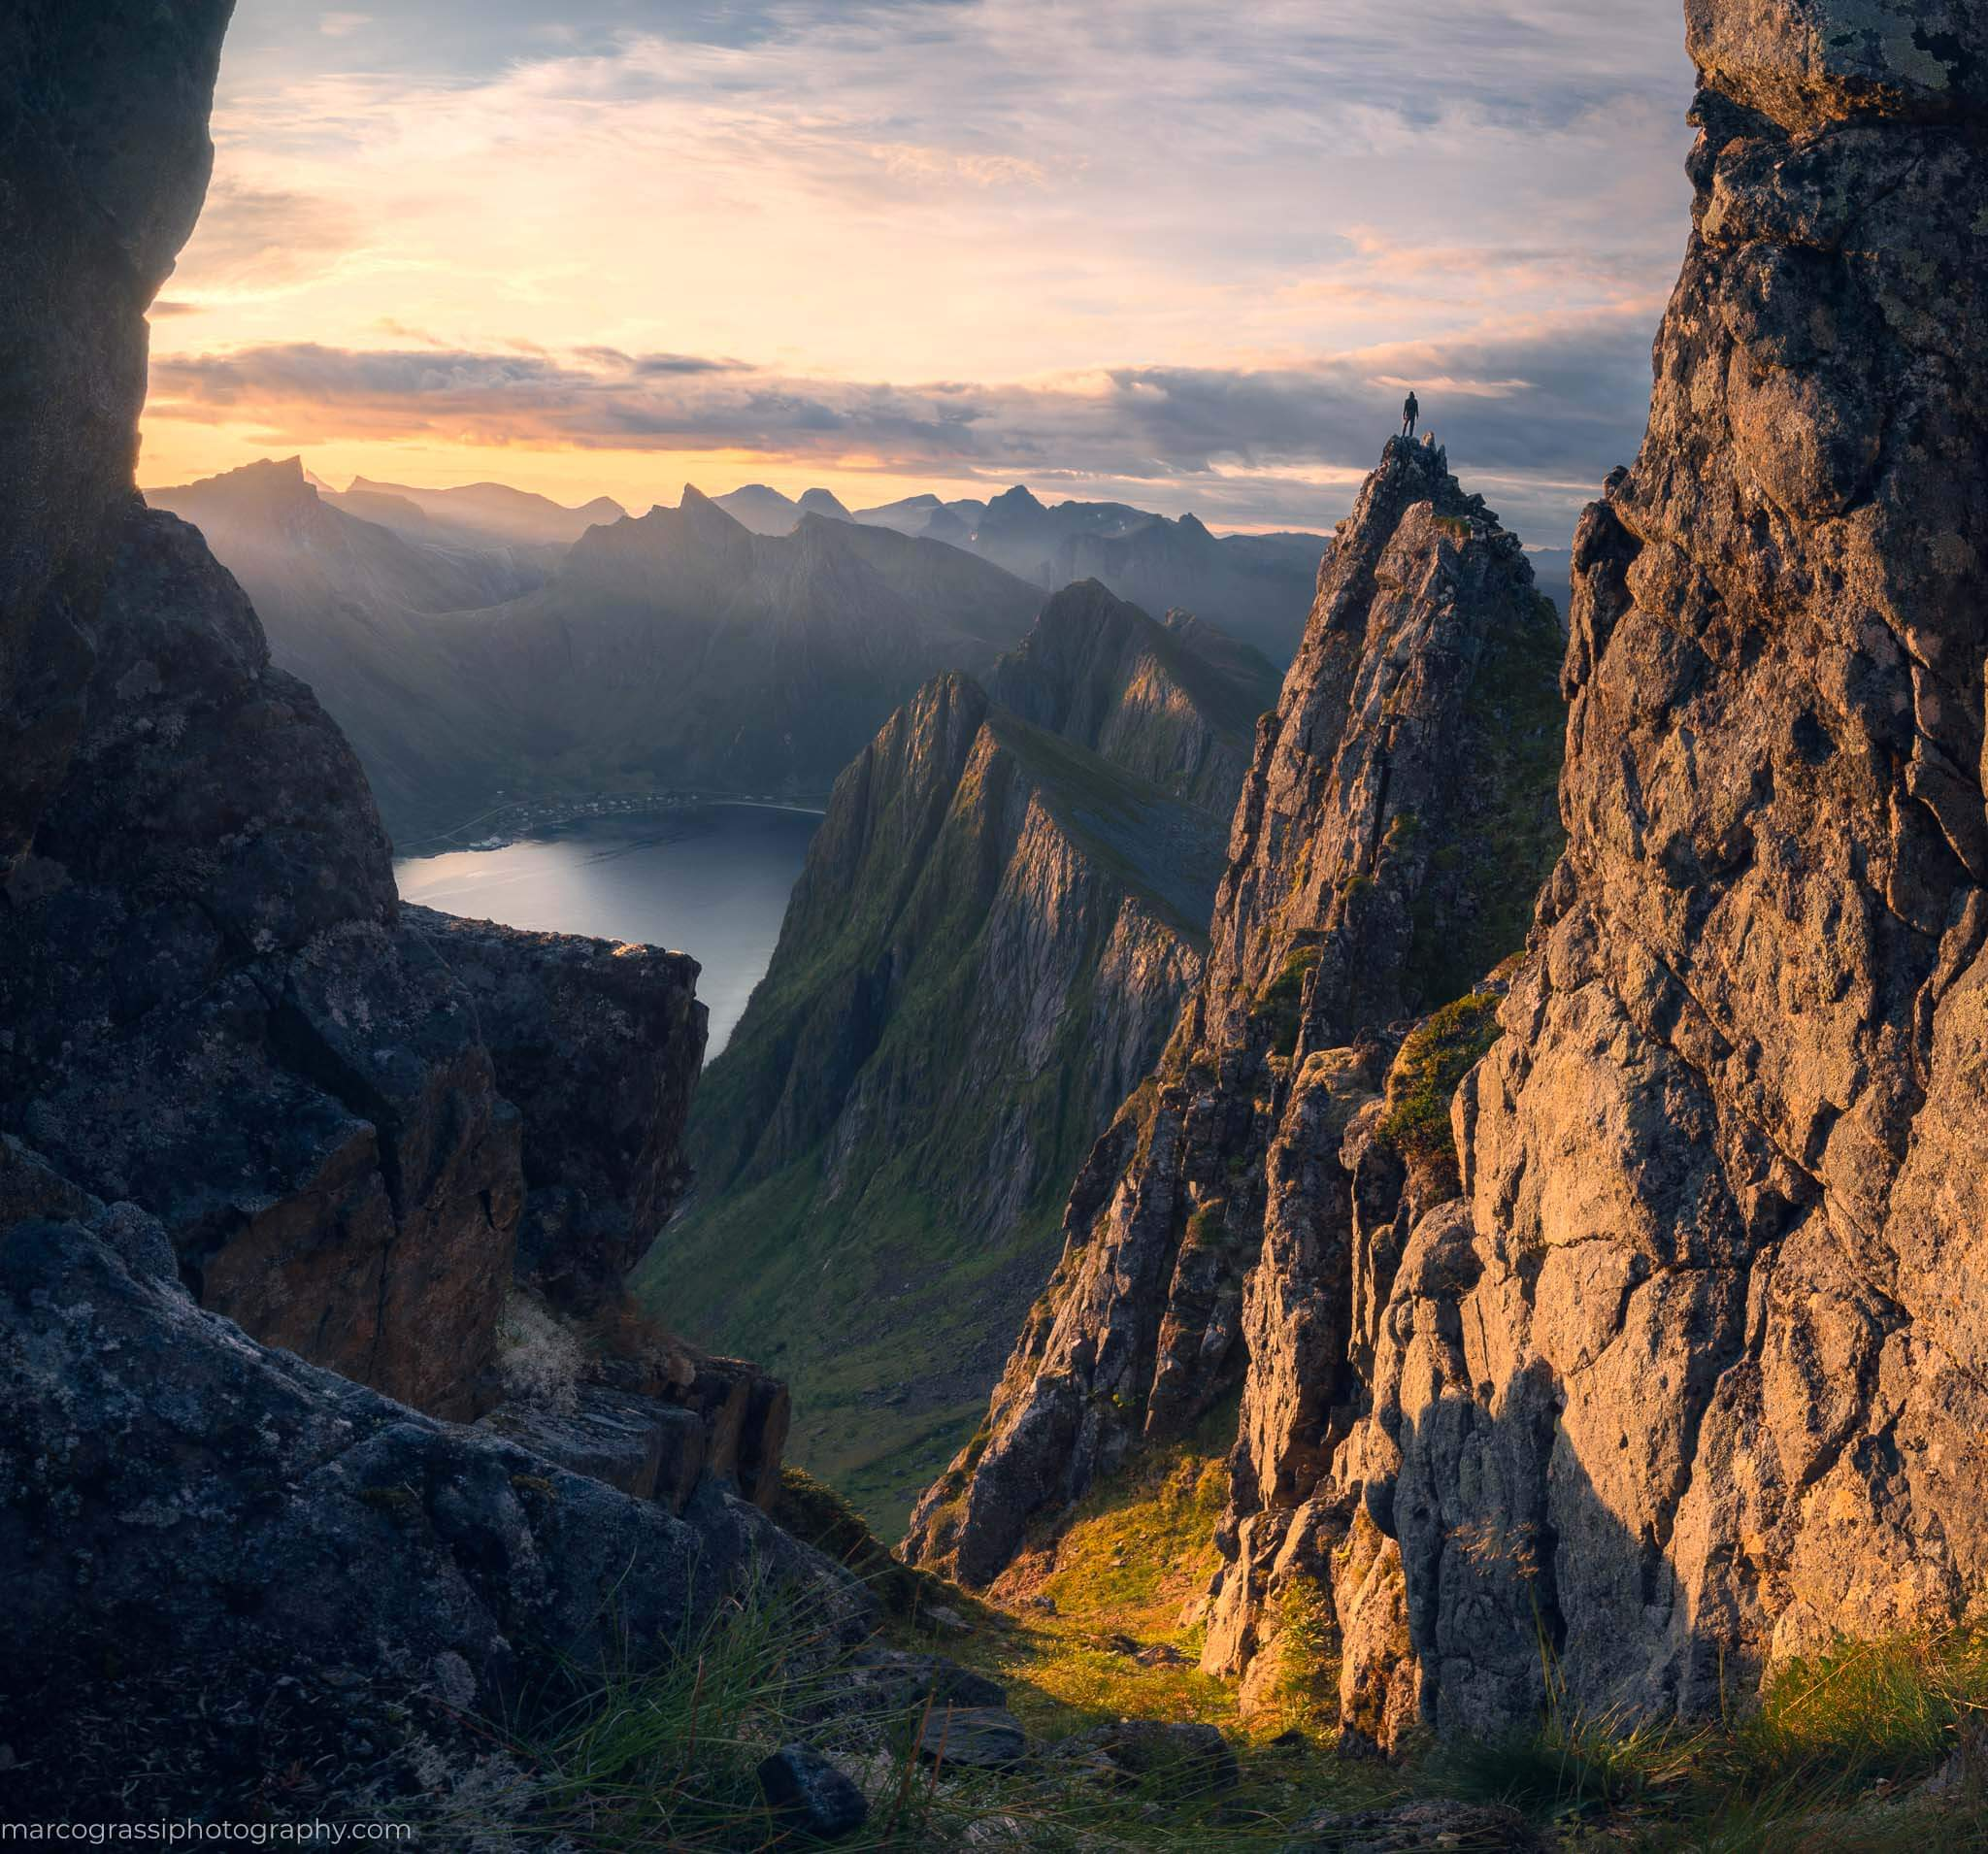 Reaching the top during the Senja Photo Tour